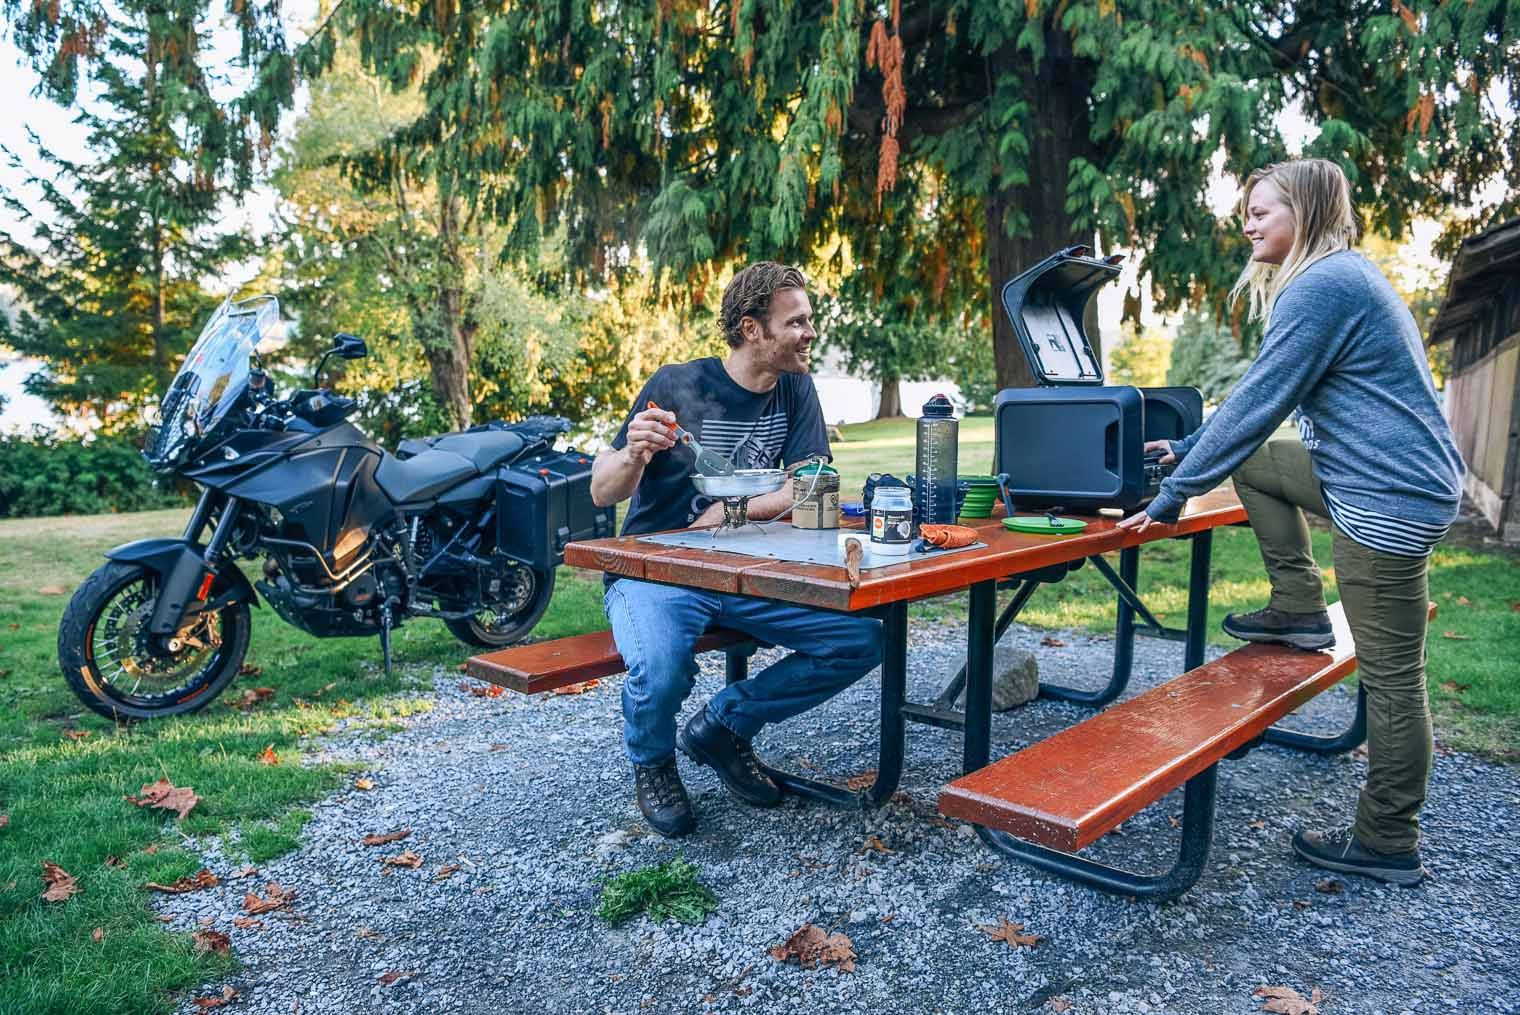 a guide to the best compact kitchen gear for motorcycle camping and touring - Camping Kitchen